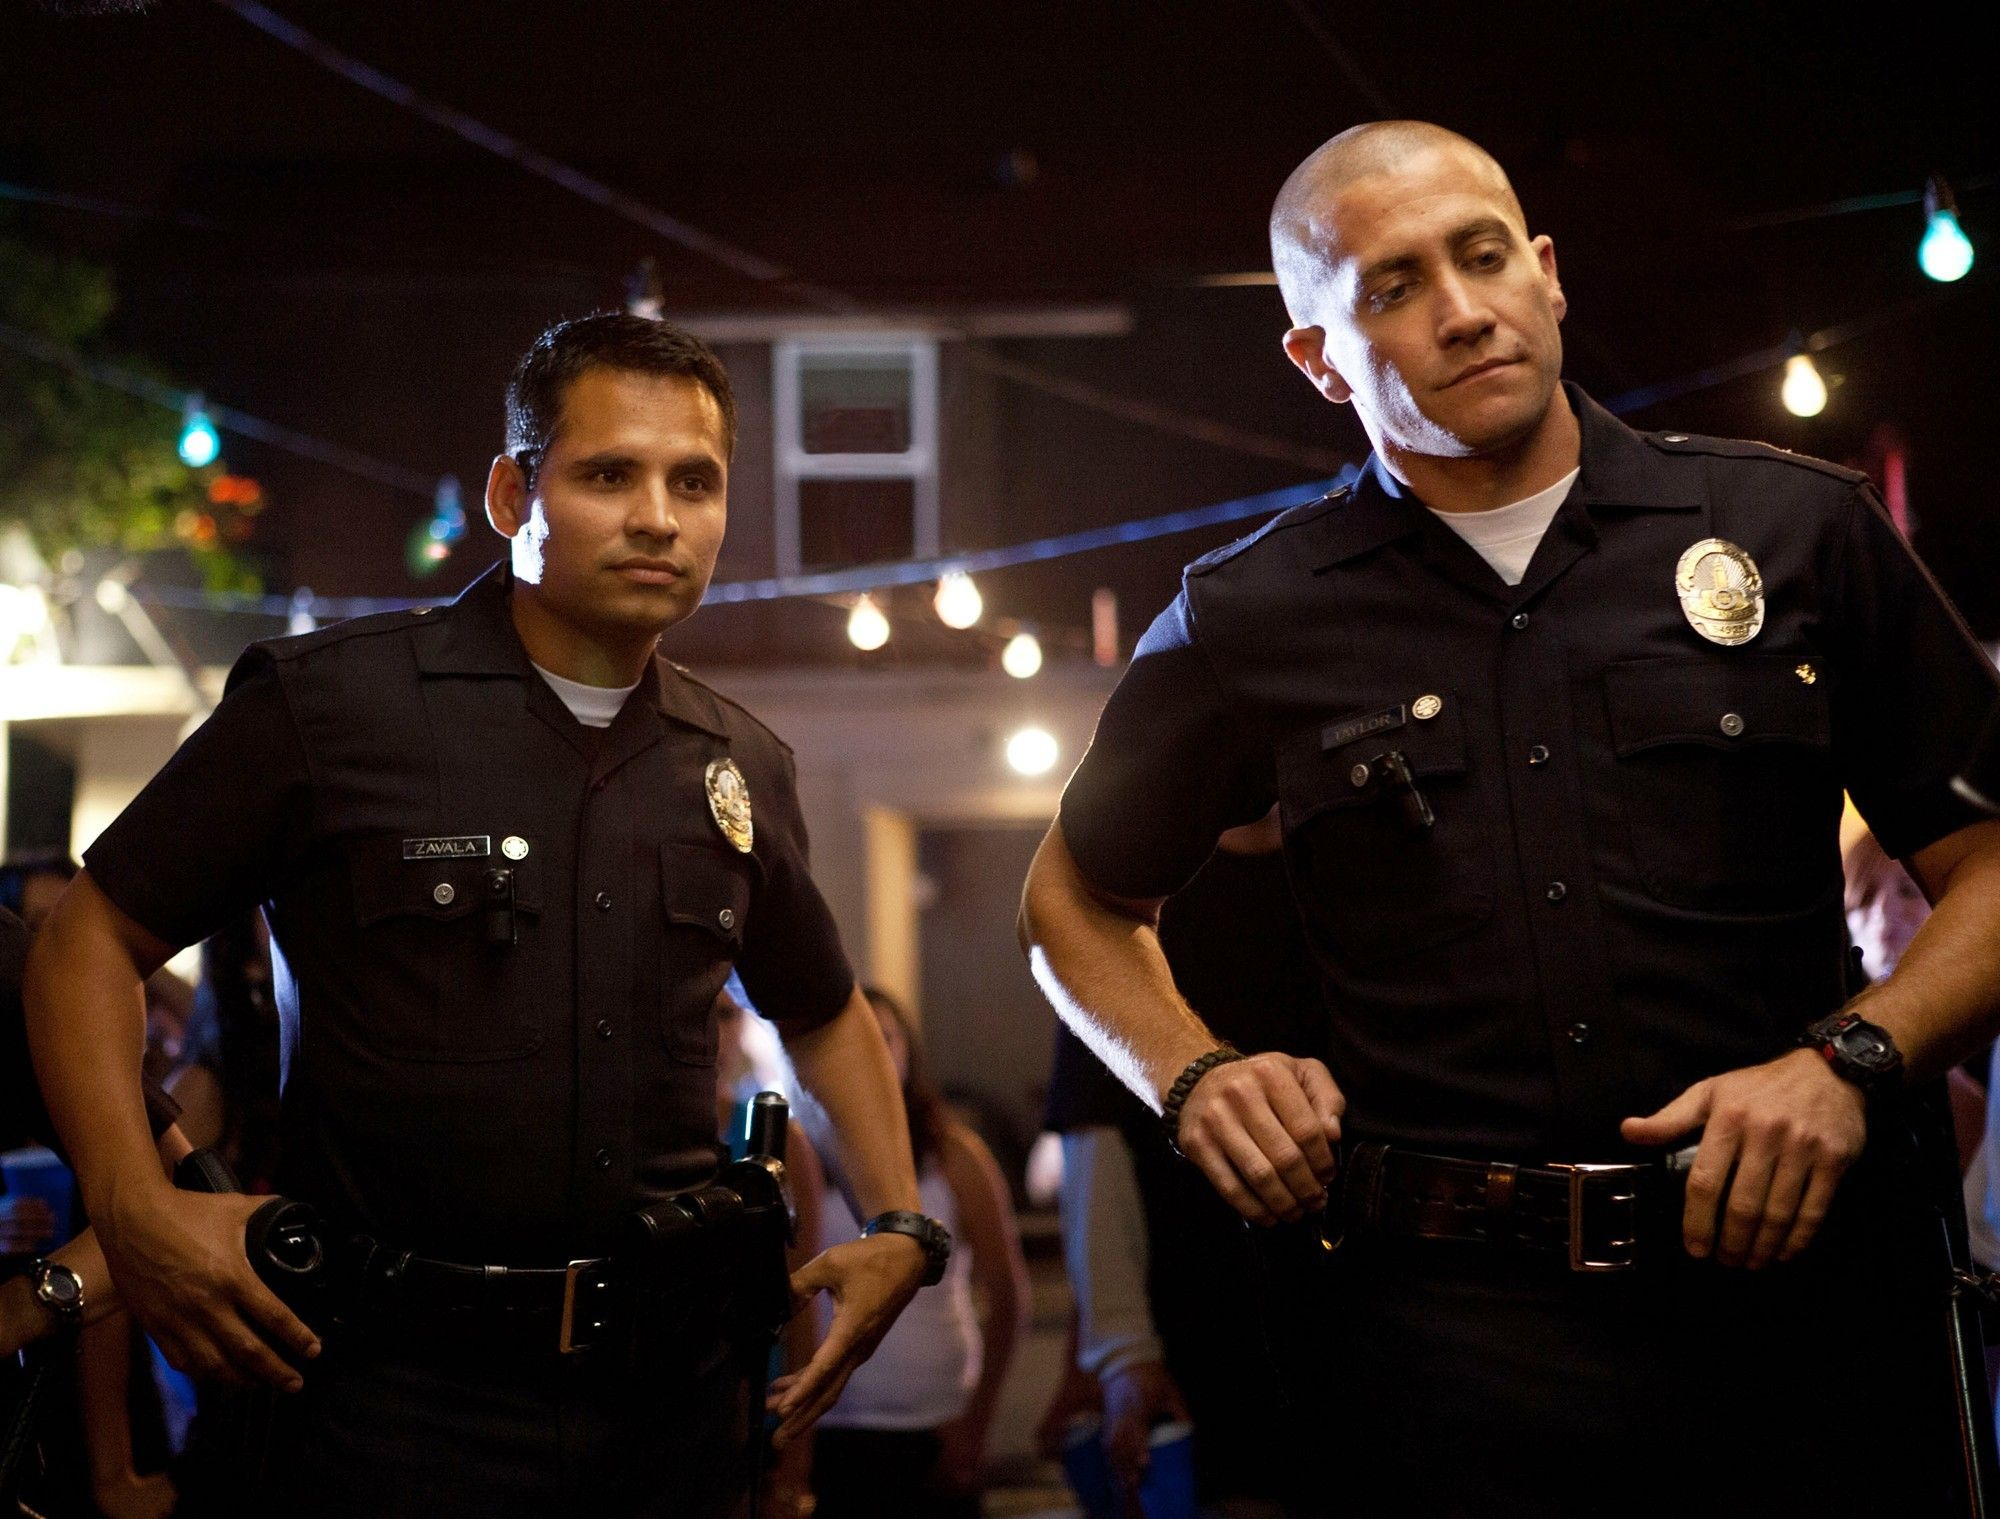 end of watch movie scene